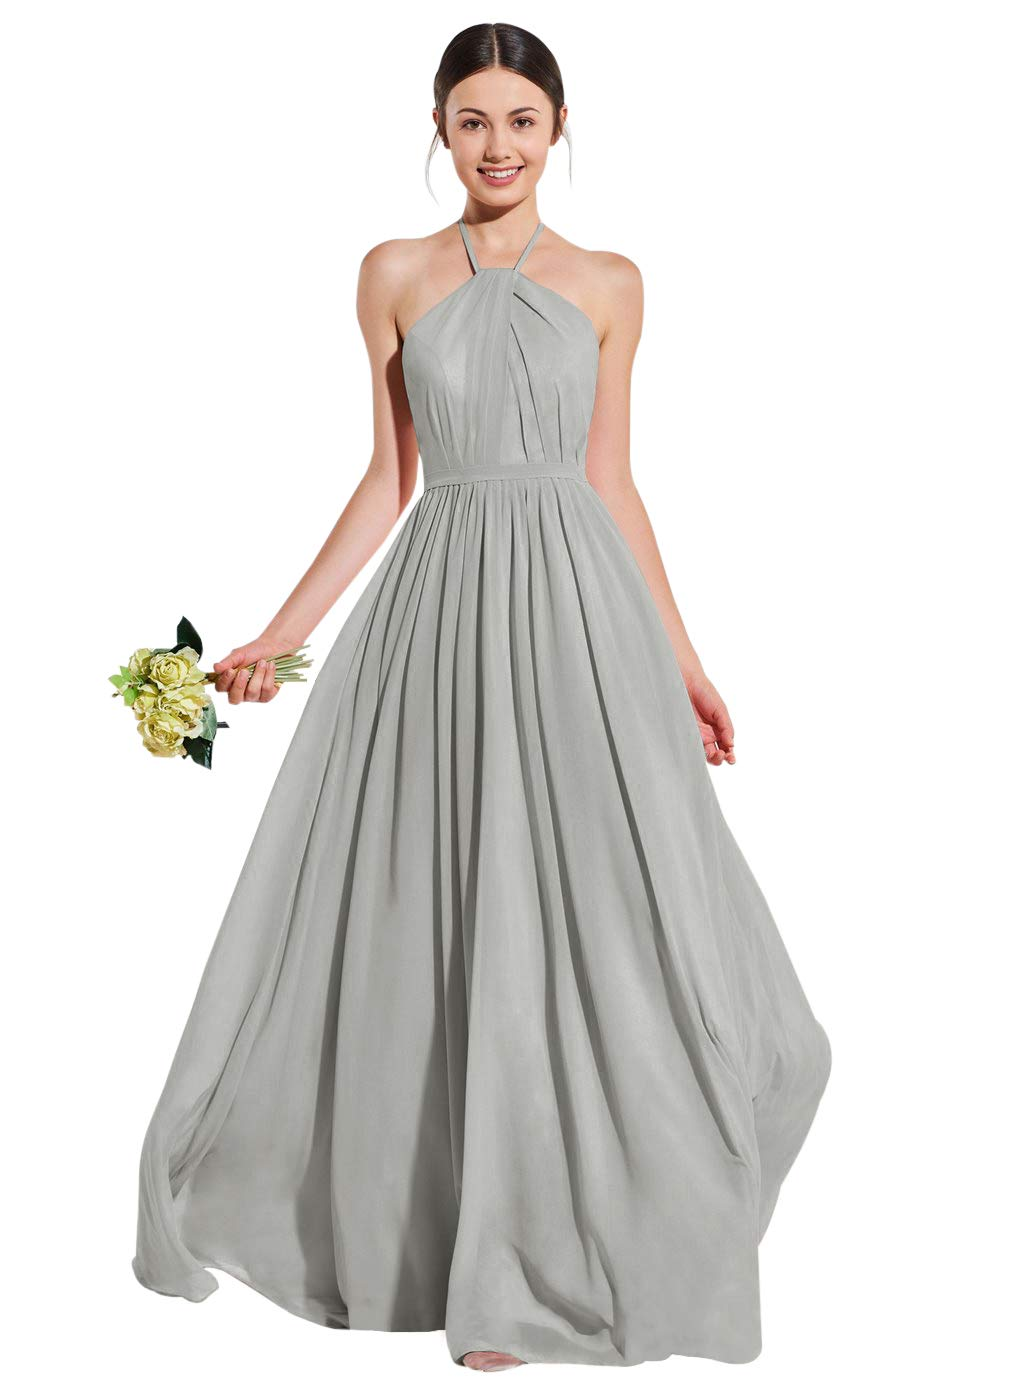 a21d3b665a7f Women's Open Back A Line Halter Ruffled Chiffon Party Prom Dress Long  Evening Gown Silver Gray Size 14